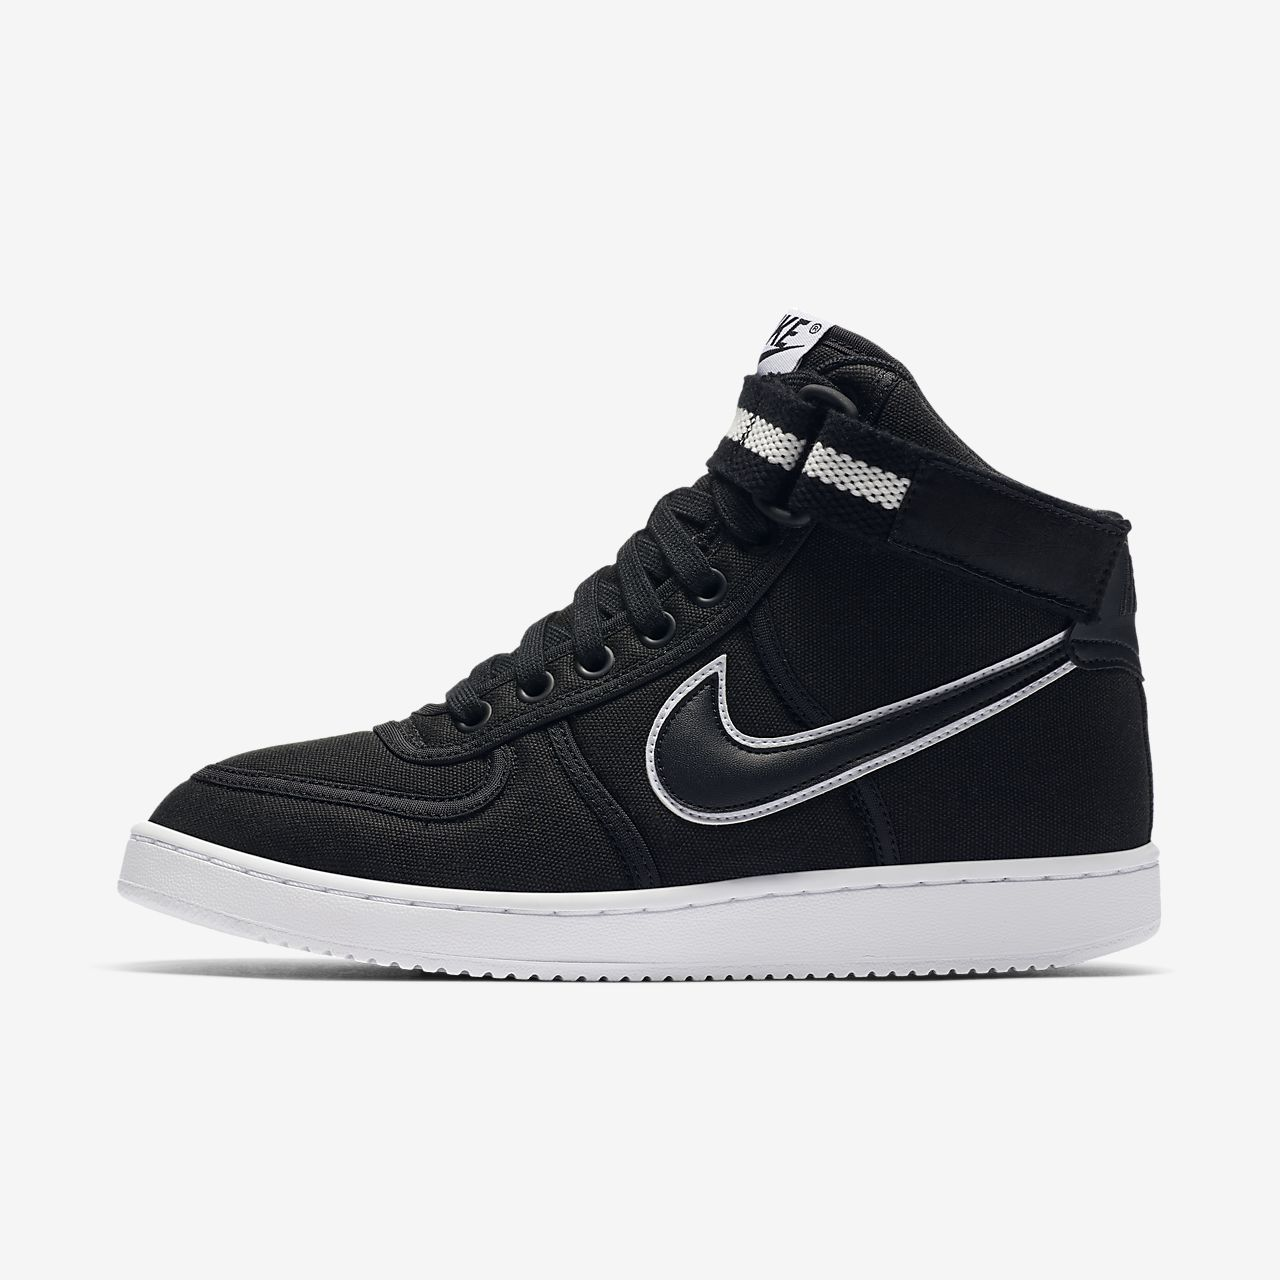 2019 year for lady- How to nike wear hi tops